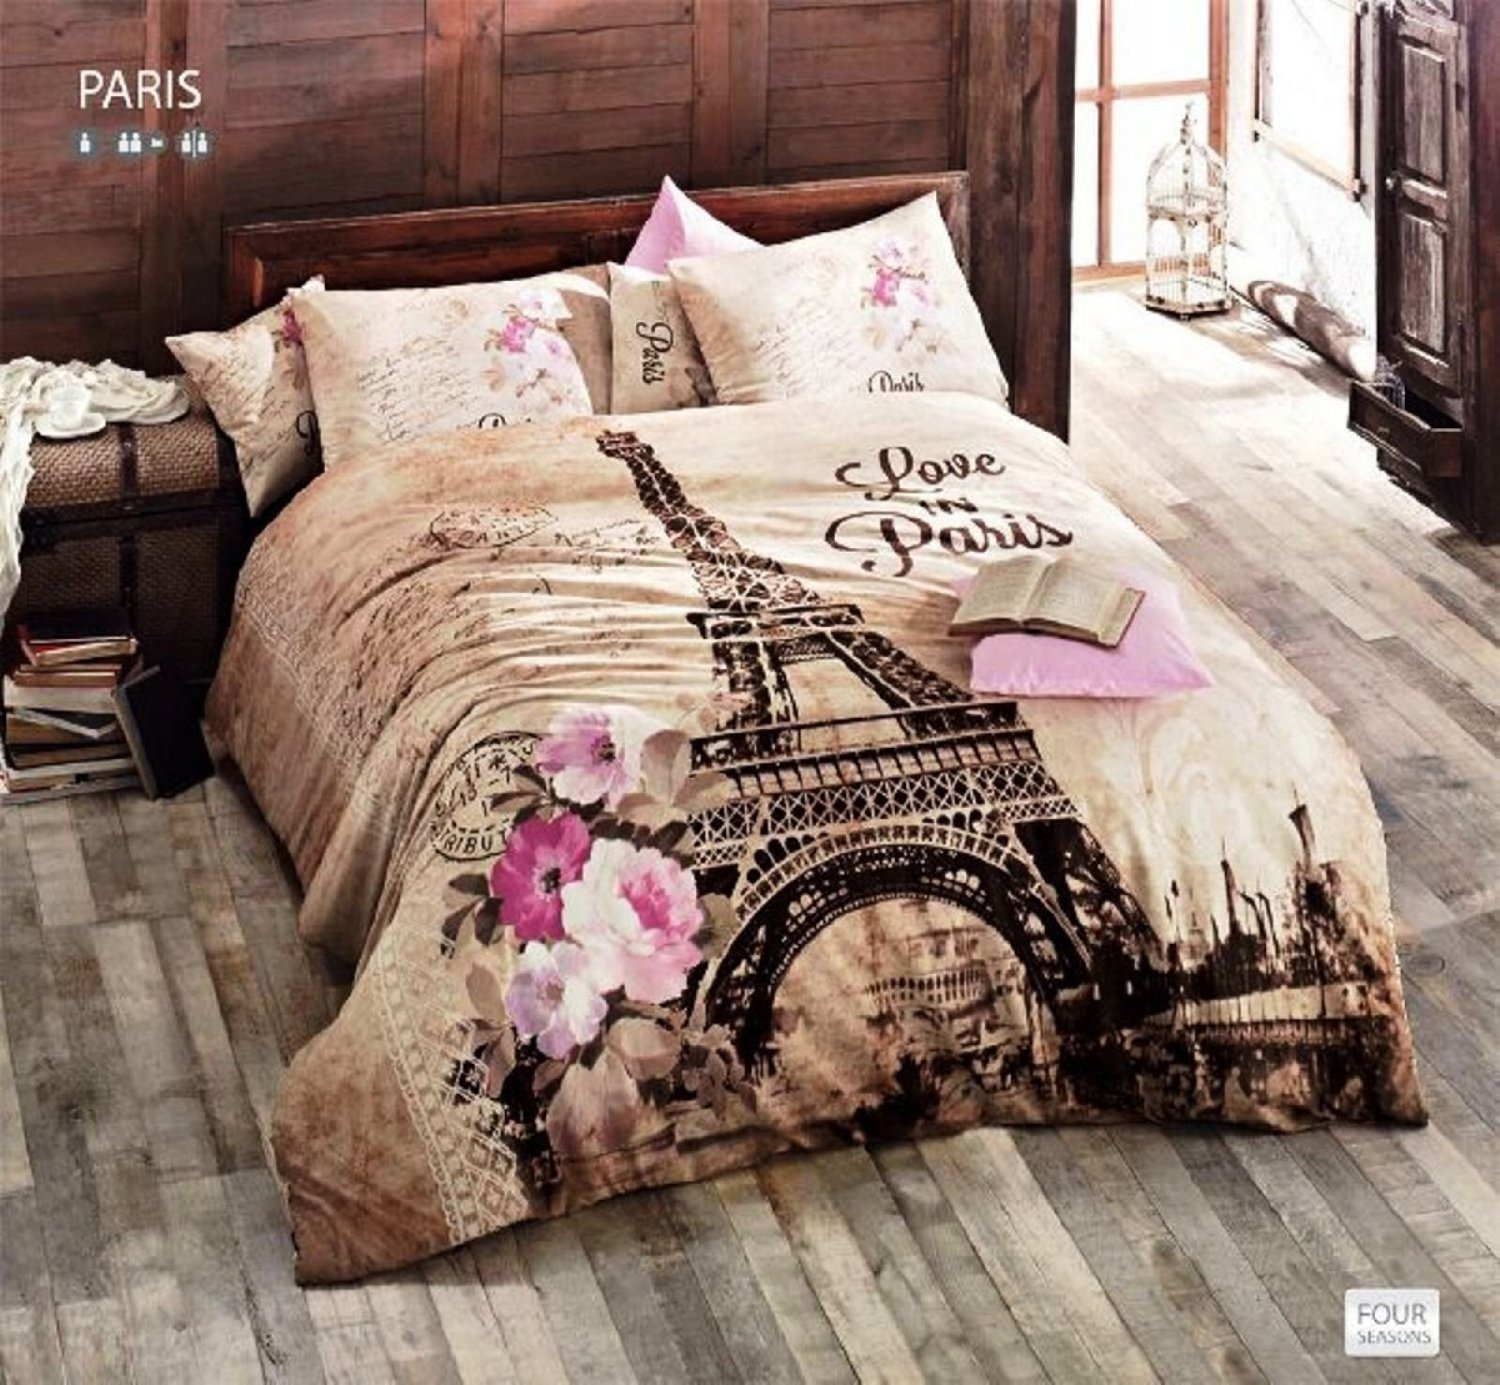 Paris Themed Bedroom Accessories Lighting For Small Bedroom Bedroom Accessories For Guys Bedroom Carpet Trends 2016: Eiffel Tower Bedding Set Review